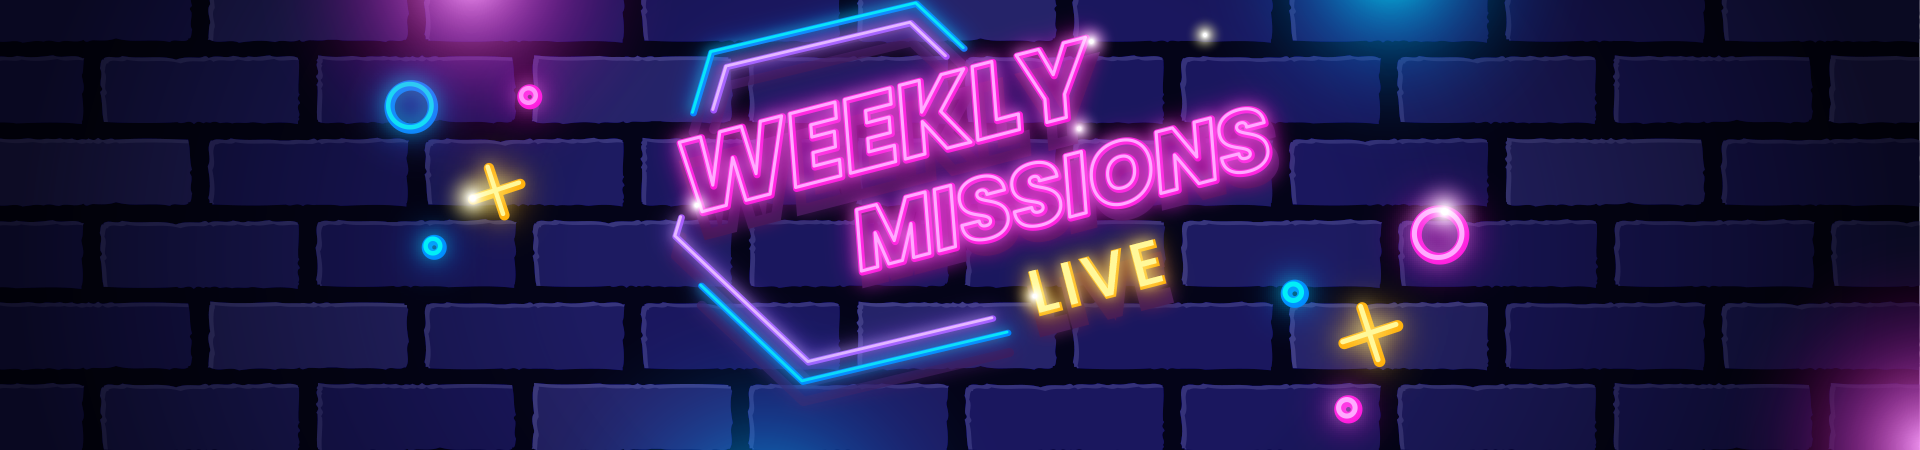 Weekly Missions and Tournaments